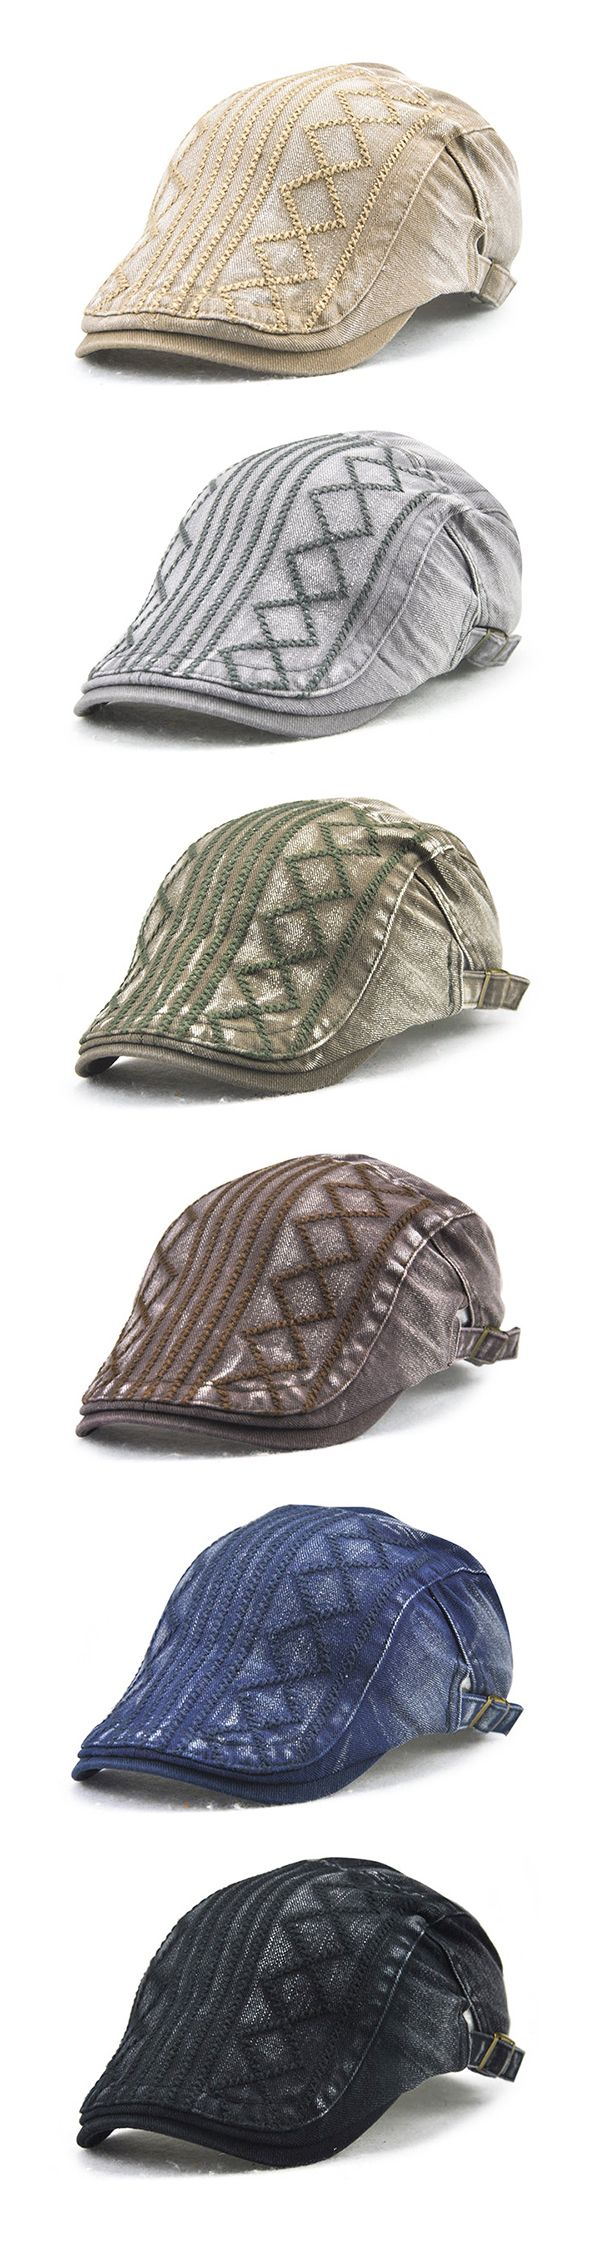 US$9.79  (47% OFF) Vintage Soft Sunshade Cotton Beret Cap / Outdoor Travel Leisure Stripe Embroidery Hat For Men